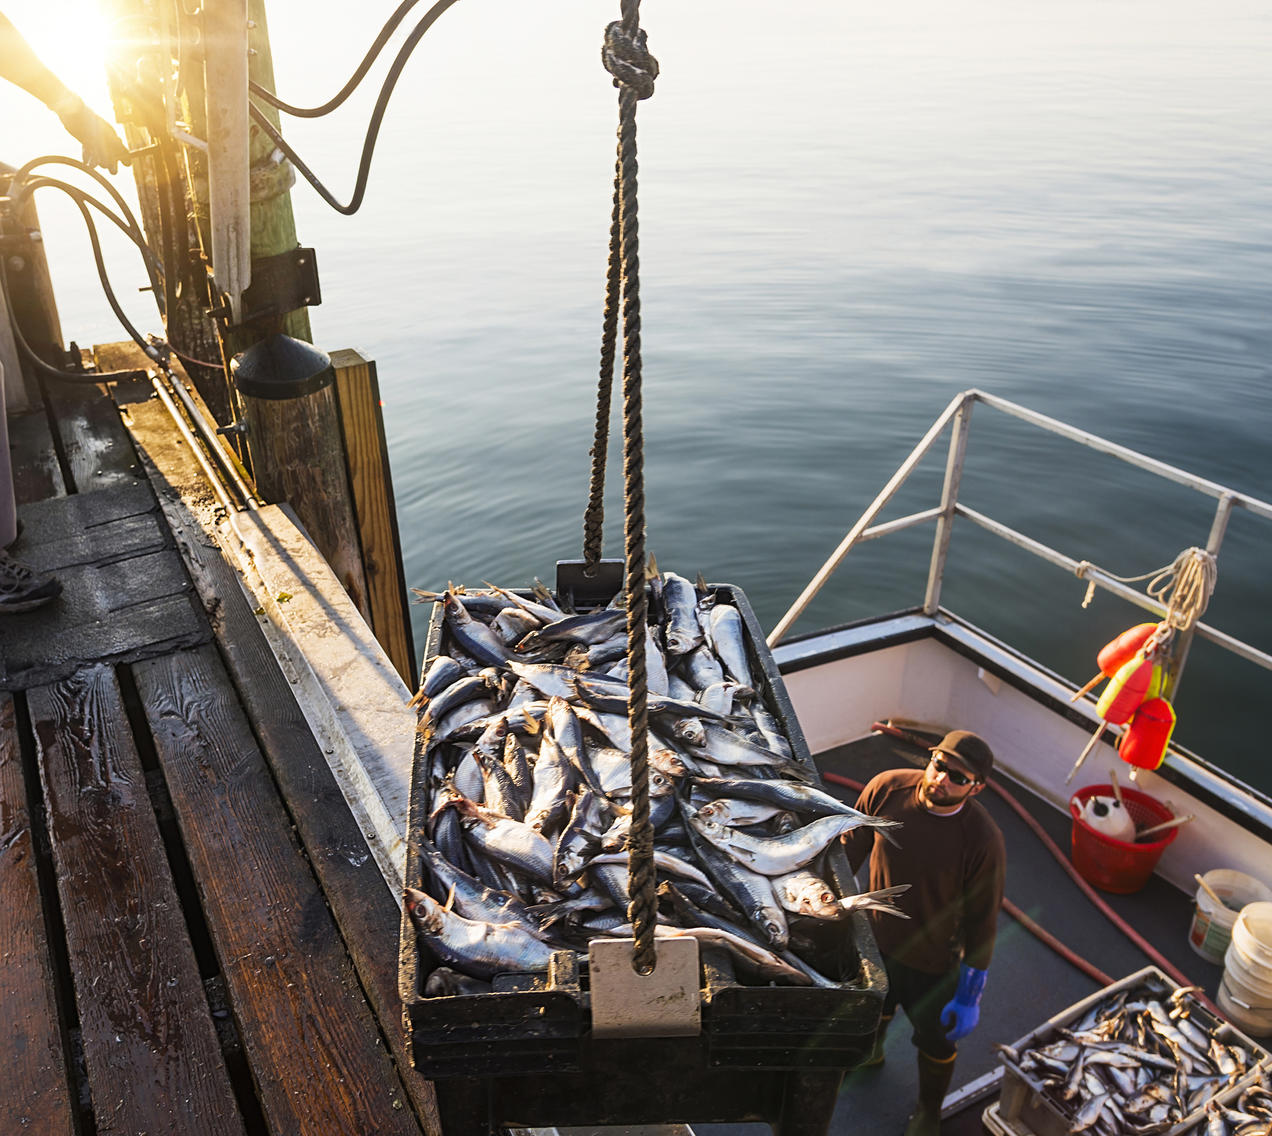 Can Anything Be Done to Stop Overfishing? | NRDC